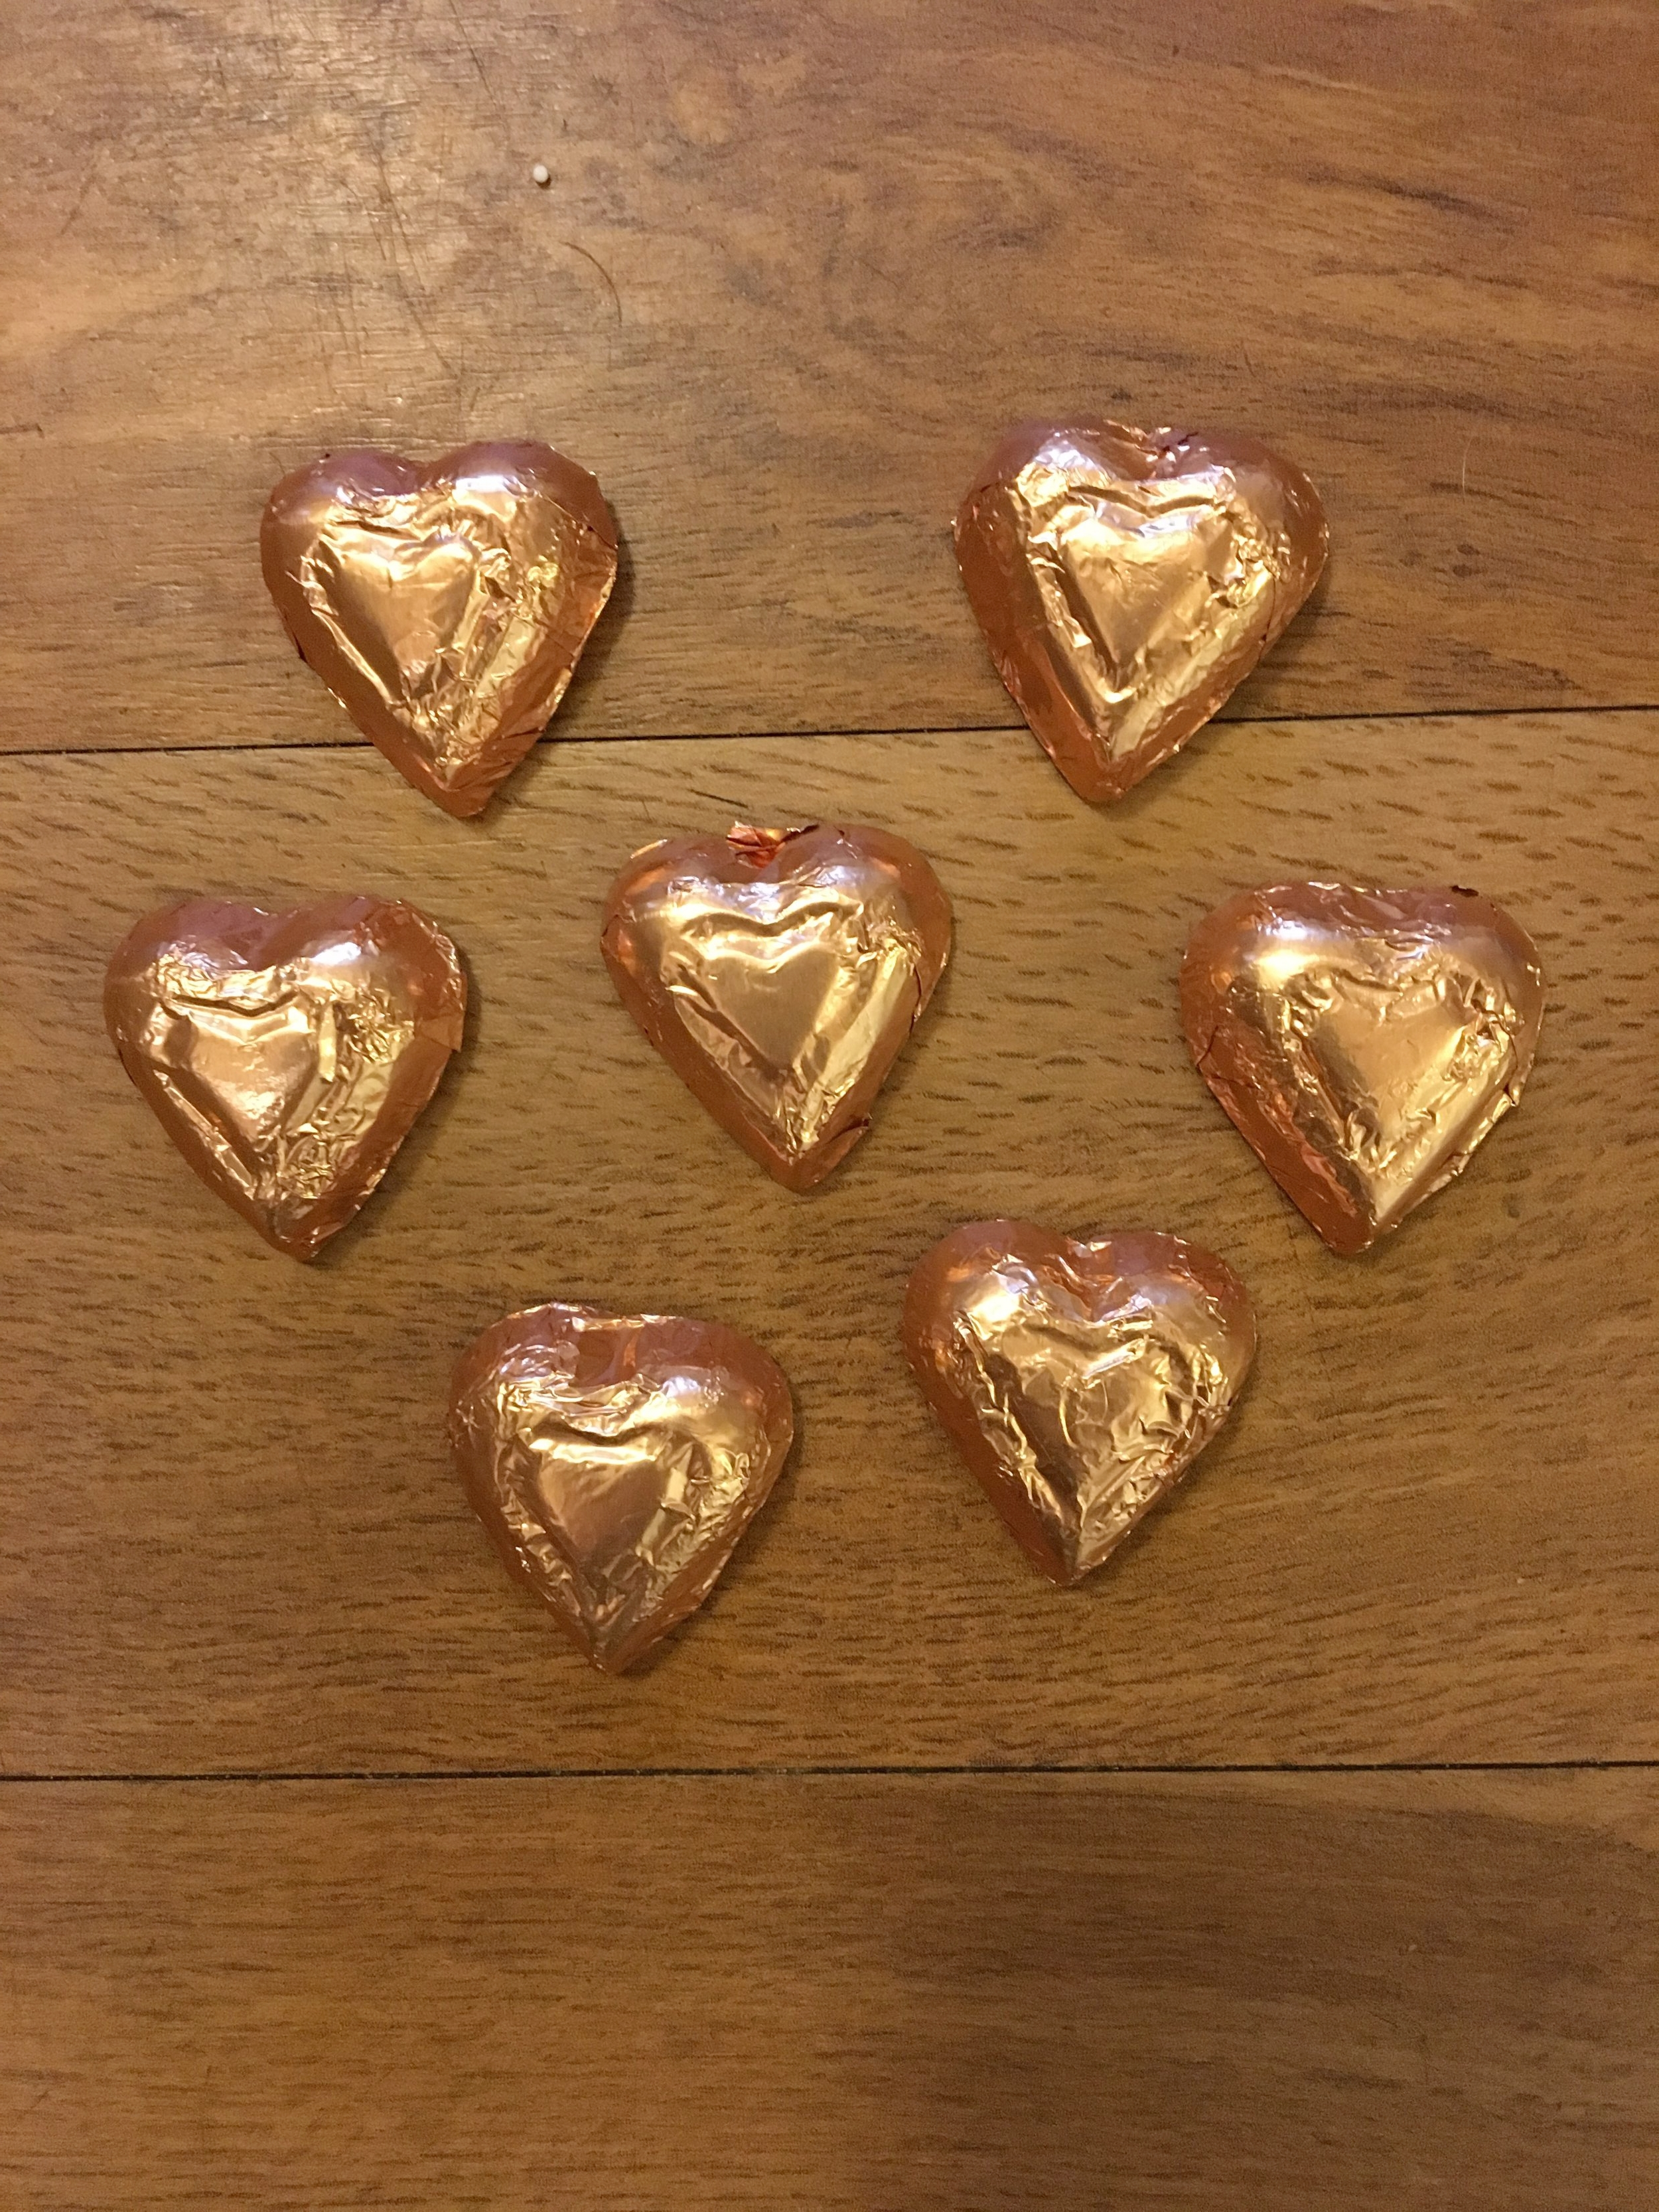 Gold Hearts   Available in dark chocolate    1 lb. - $14.95 1/2 lb. - $7.50 1/4 lb. - $3.75